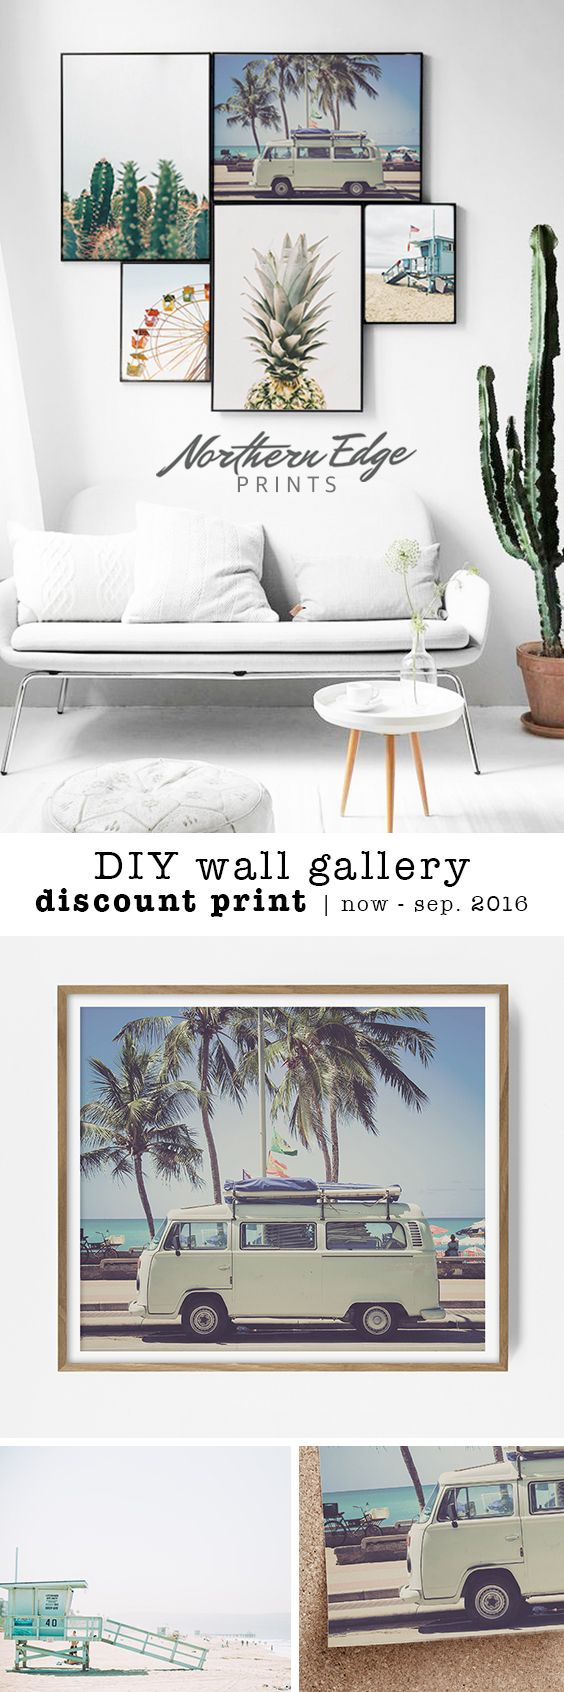 Inspo for vacation pictures and wall galleries